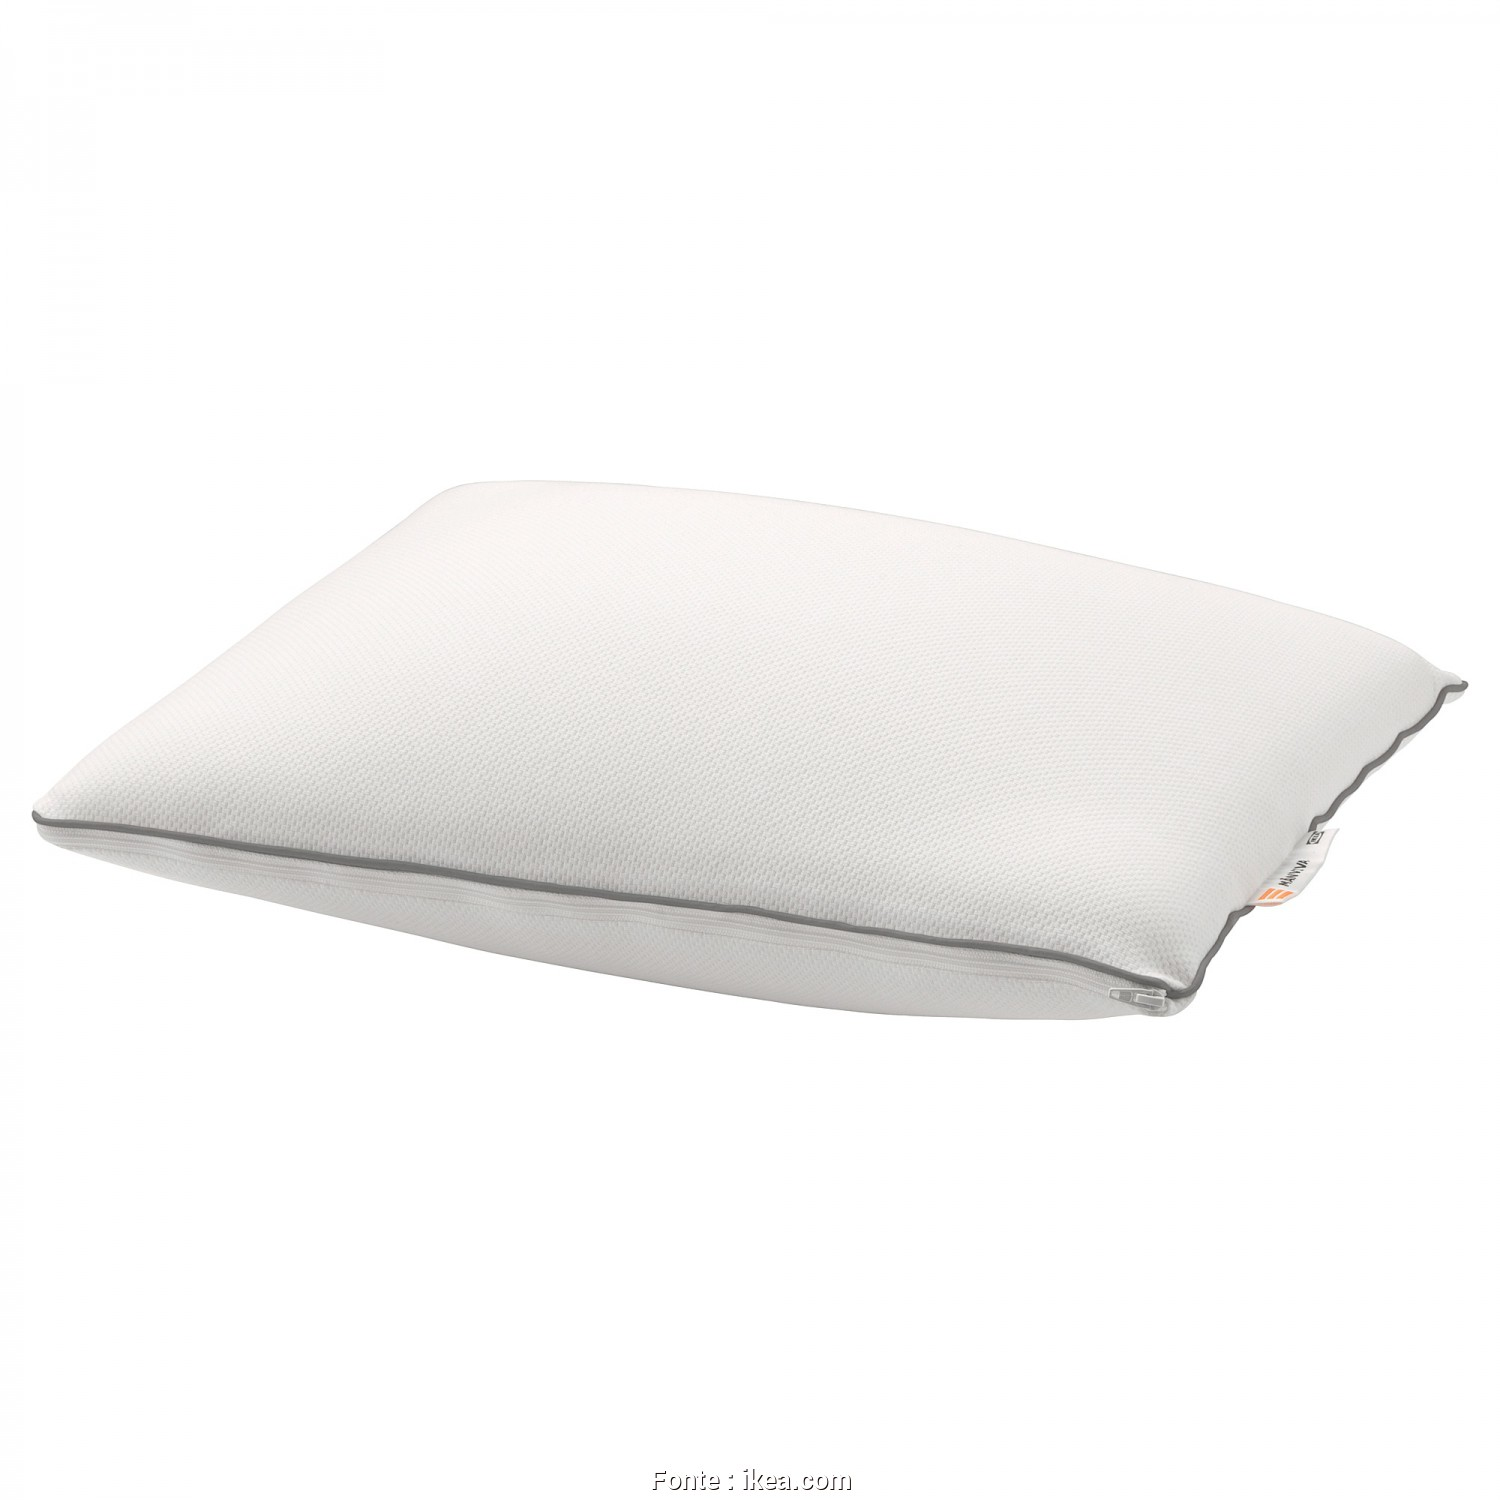 Cuscino Memory Foam Ikea, Superiore IKEA MÅNVIVA Memory Foam Pillow Choose This Pillow If, Are A Back Or Side Sleeper